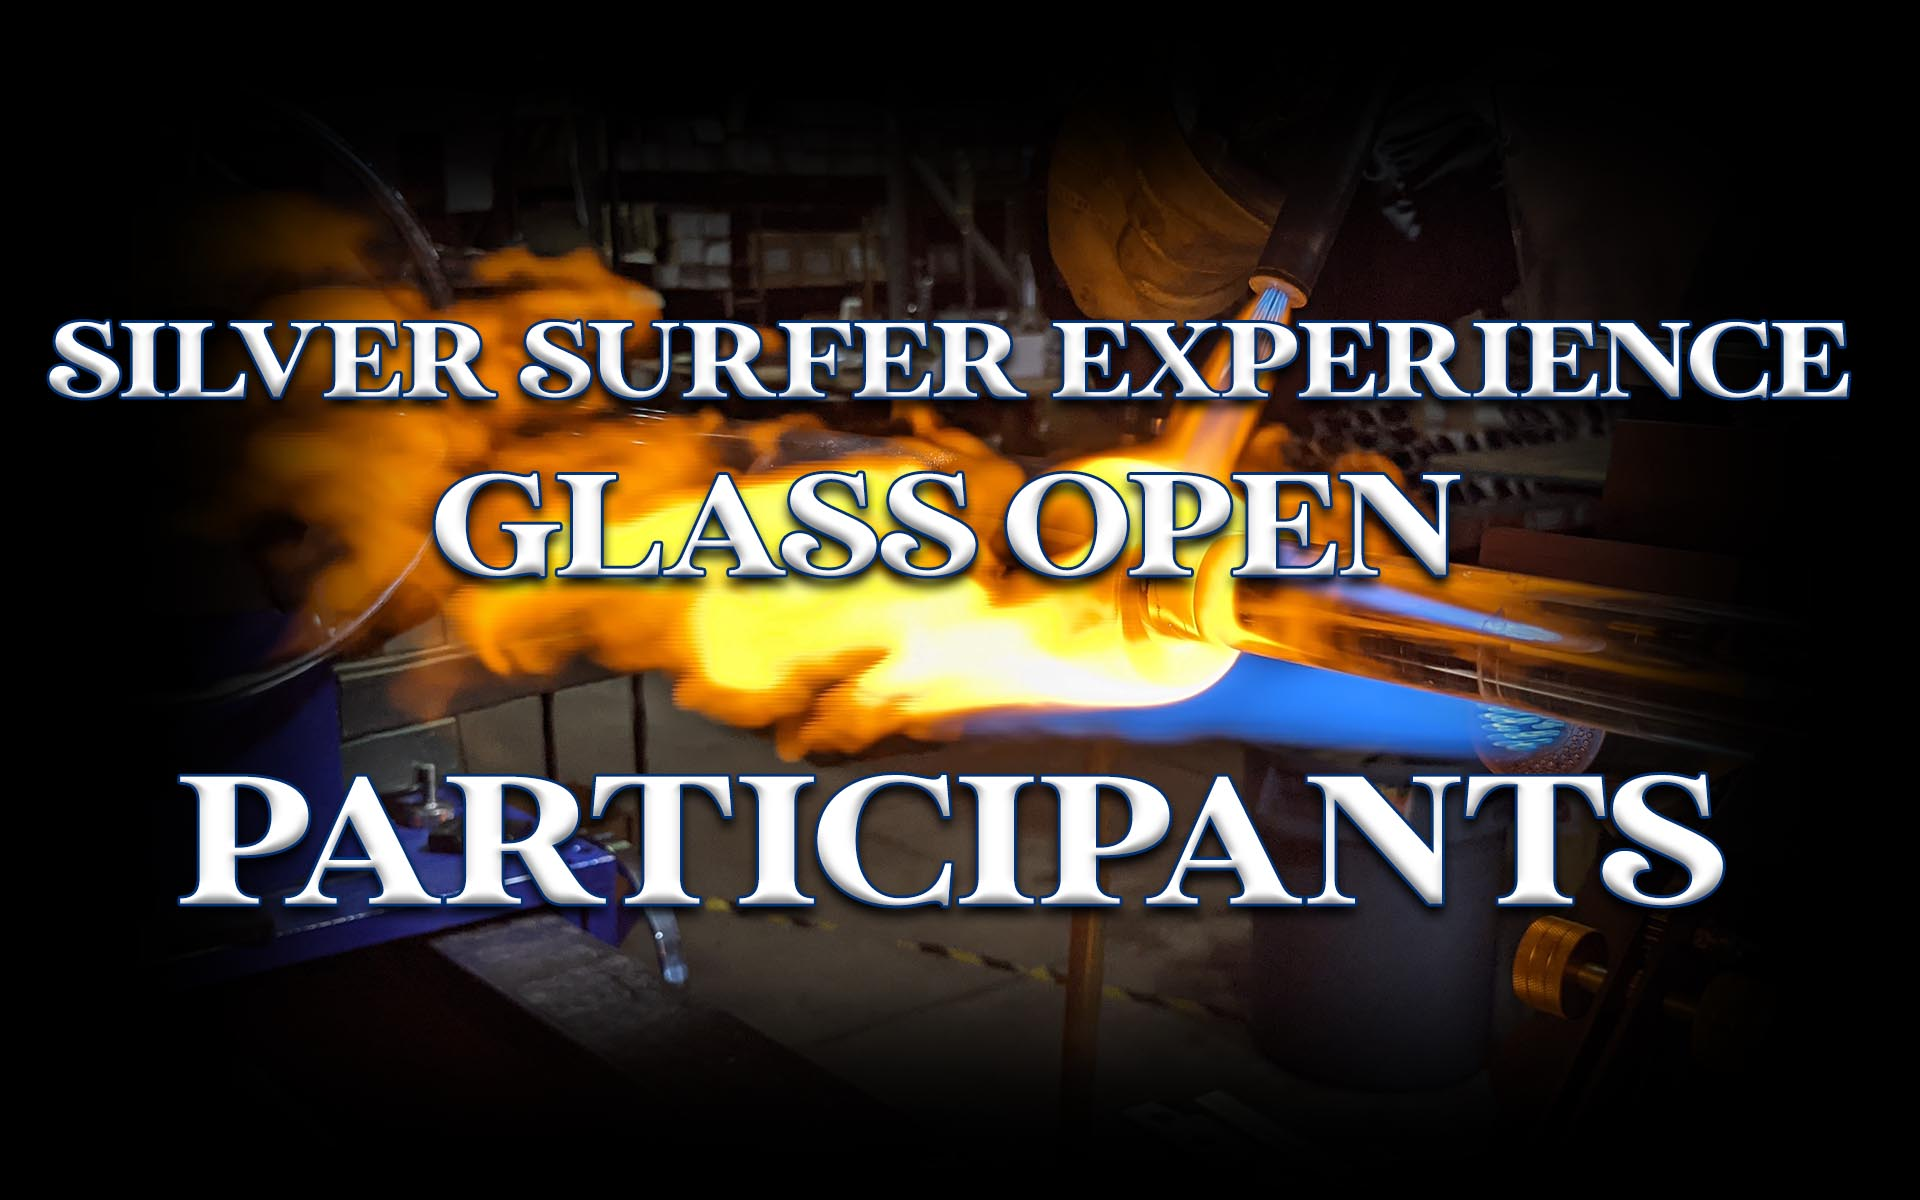 silver-surfer-experience-glass-open-parti.jpg